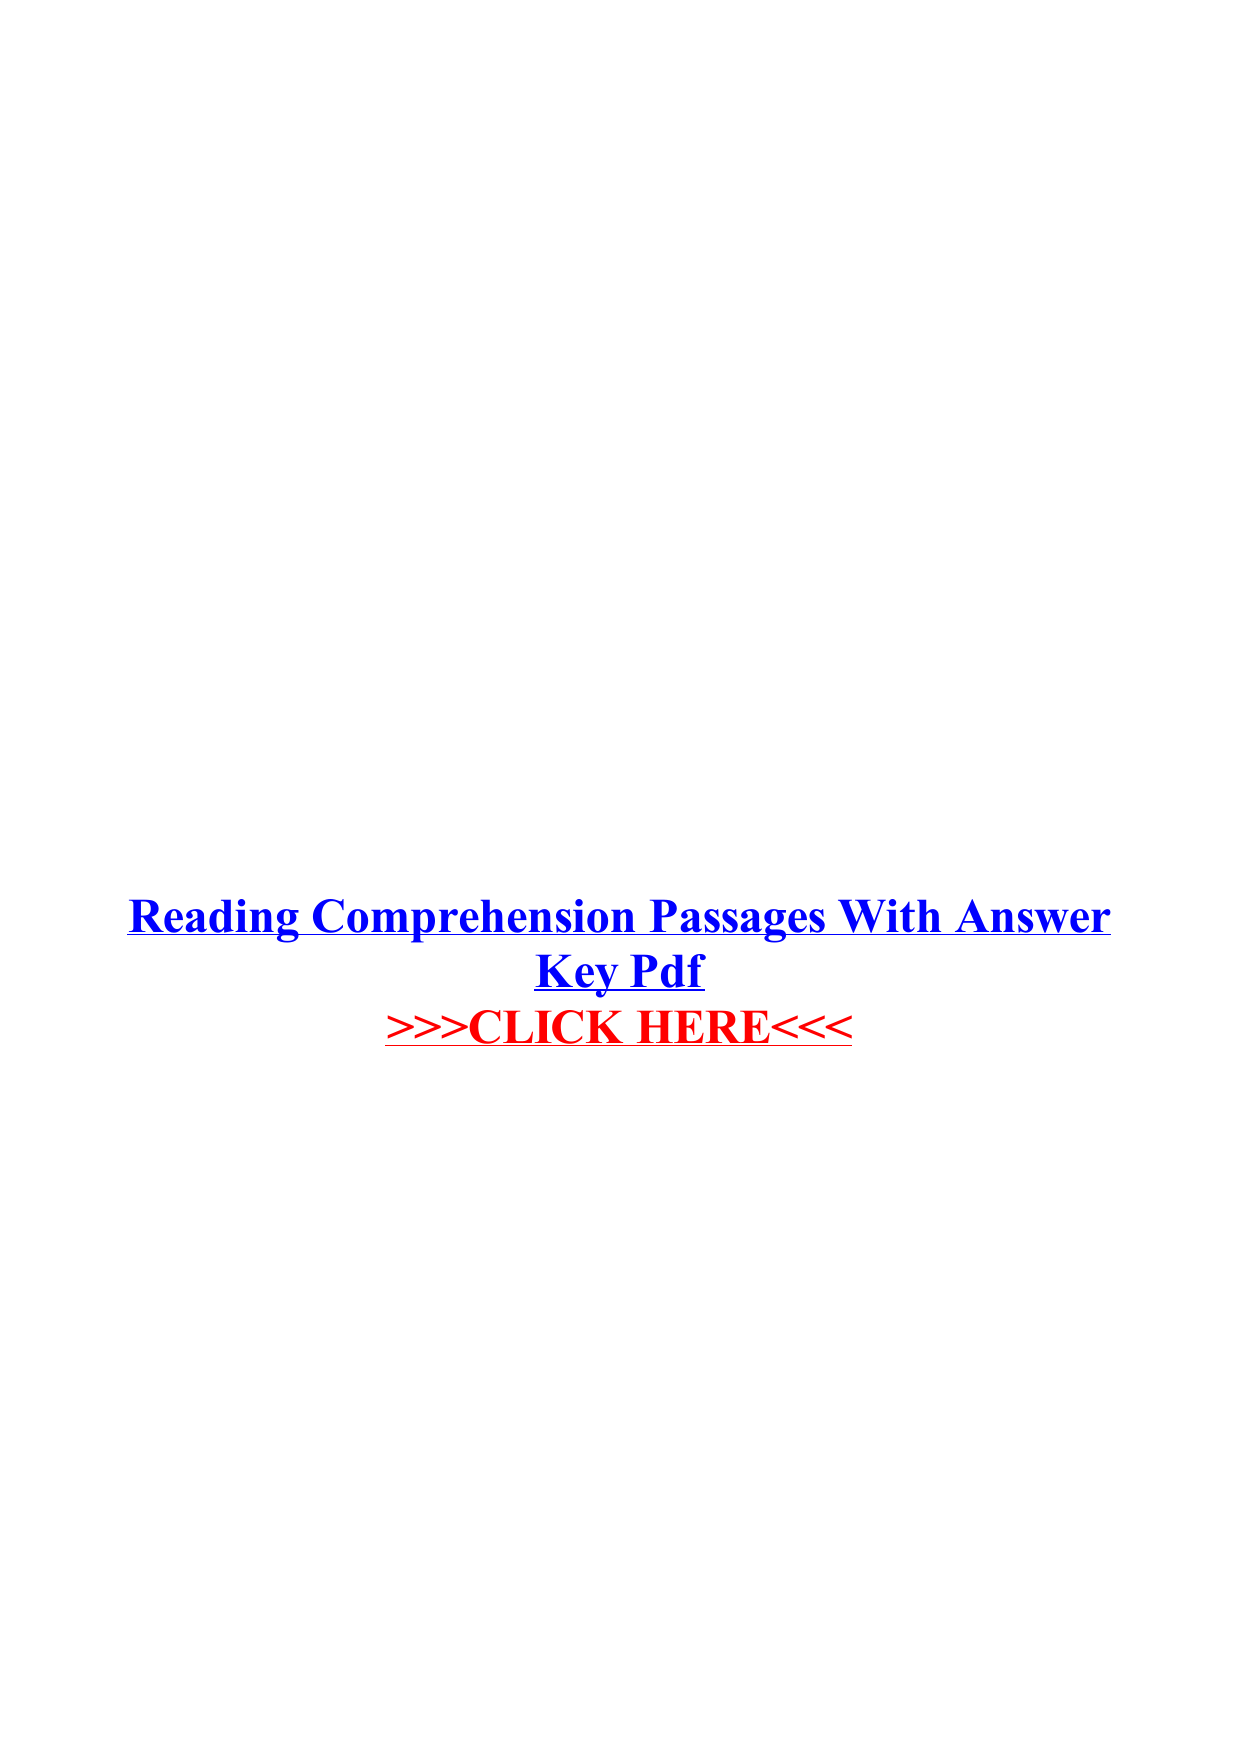 Reading Comprehension Passages With Answer Key